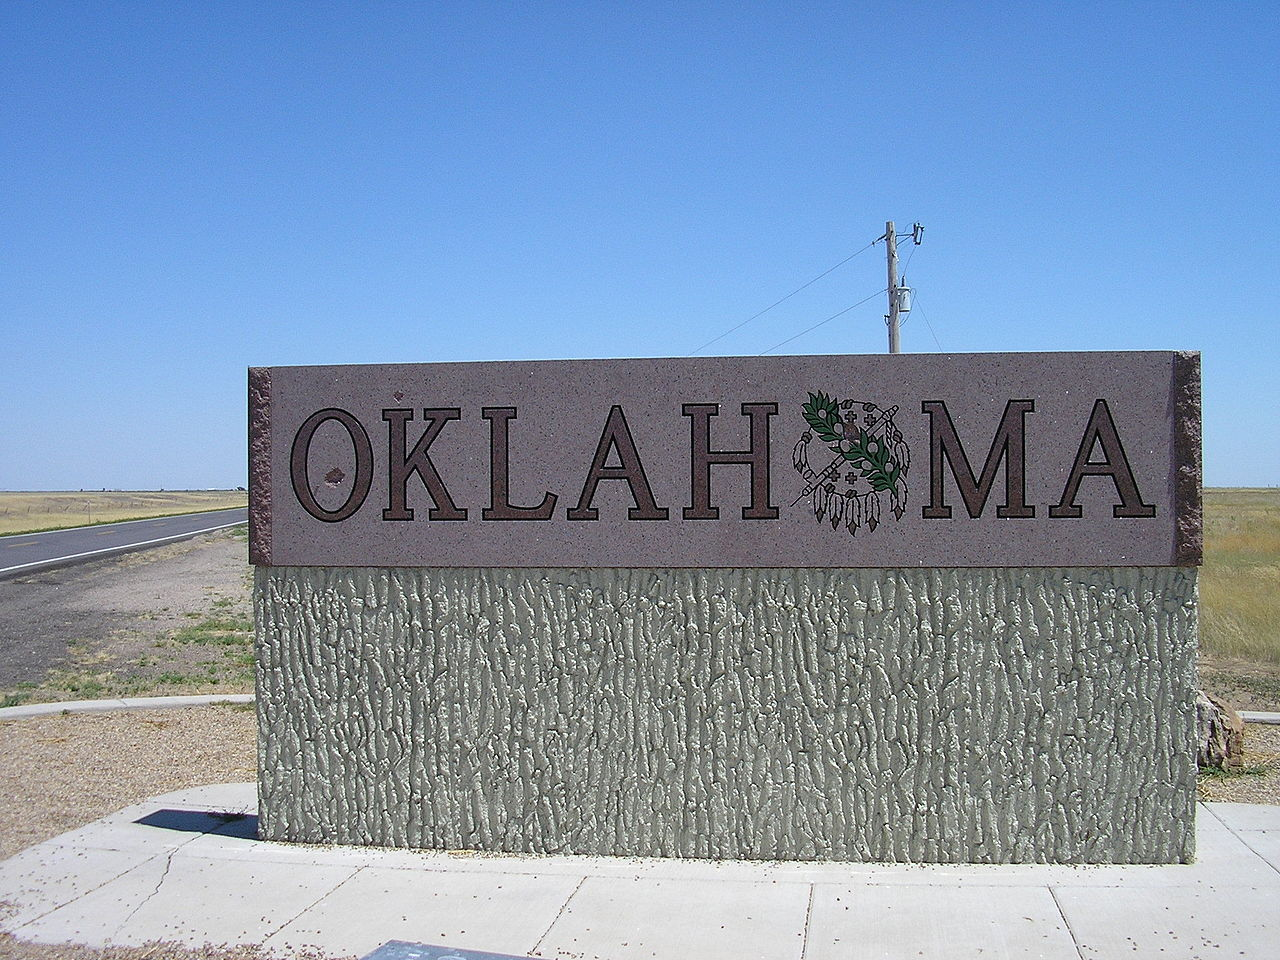 Speed limit in Oklahoma – National Speed Limit in Oklahoma